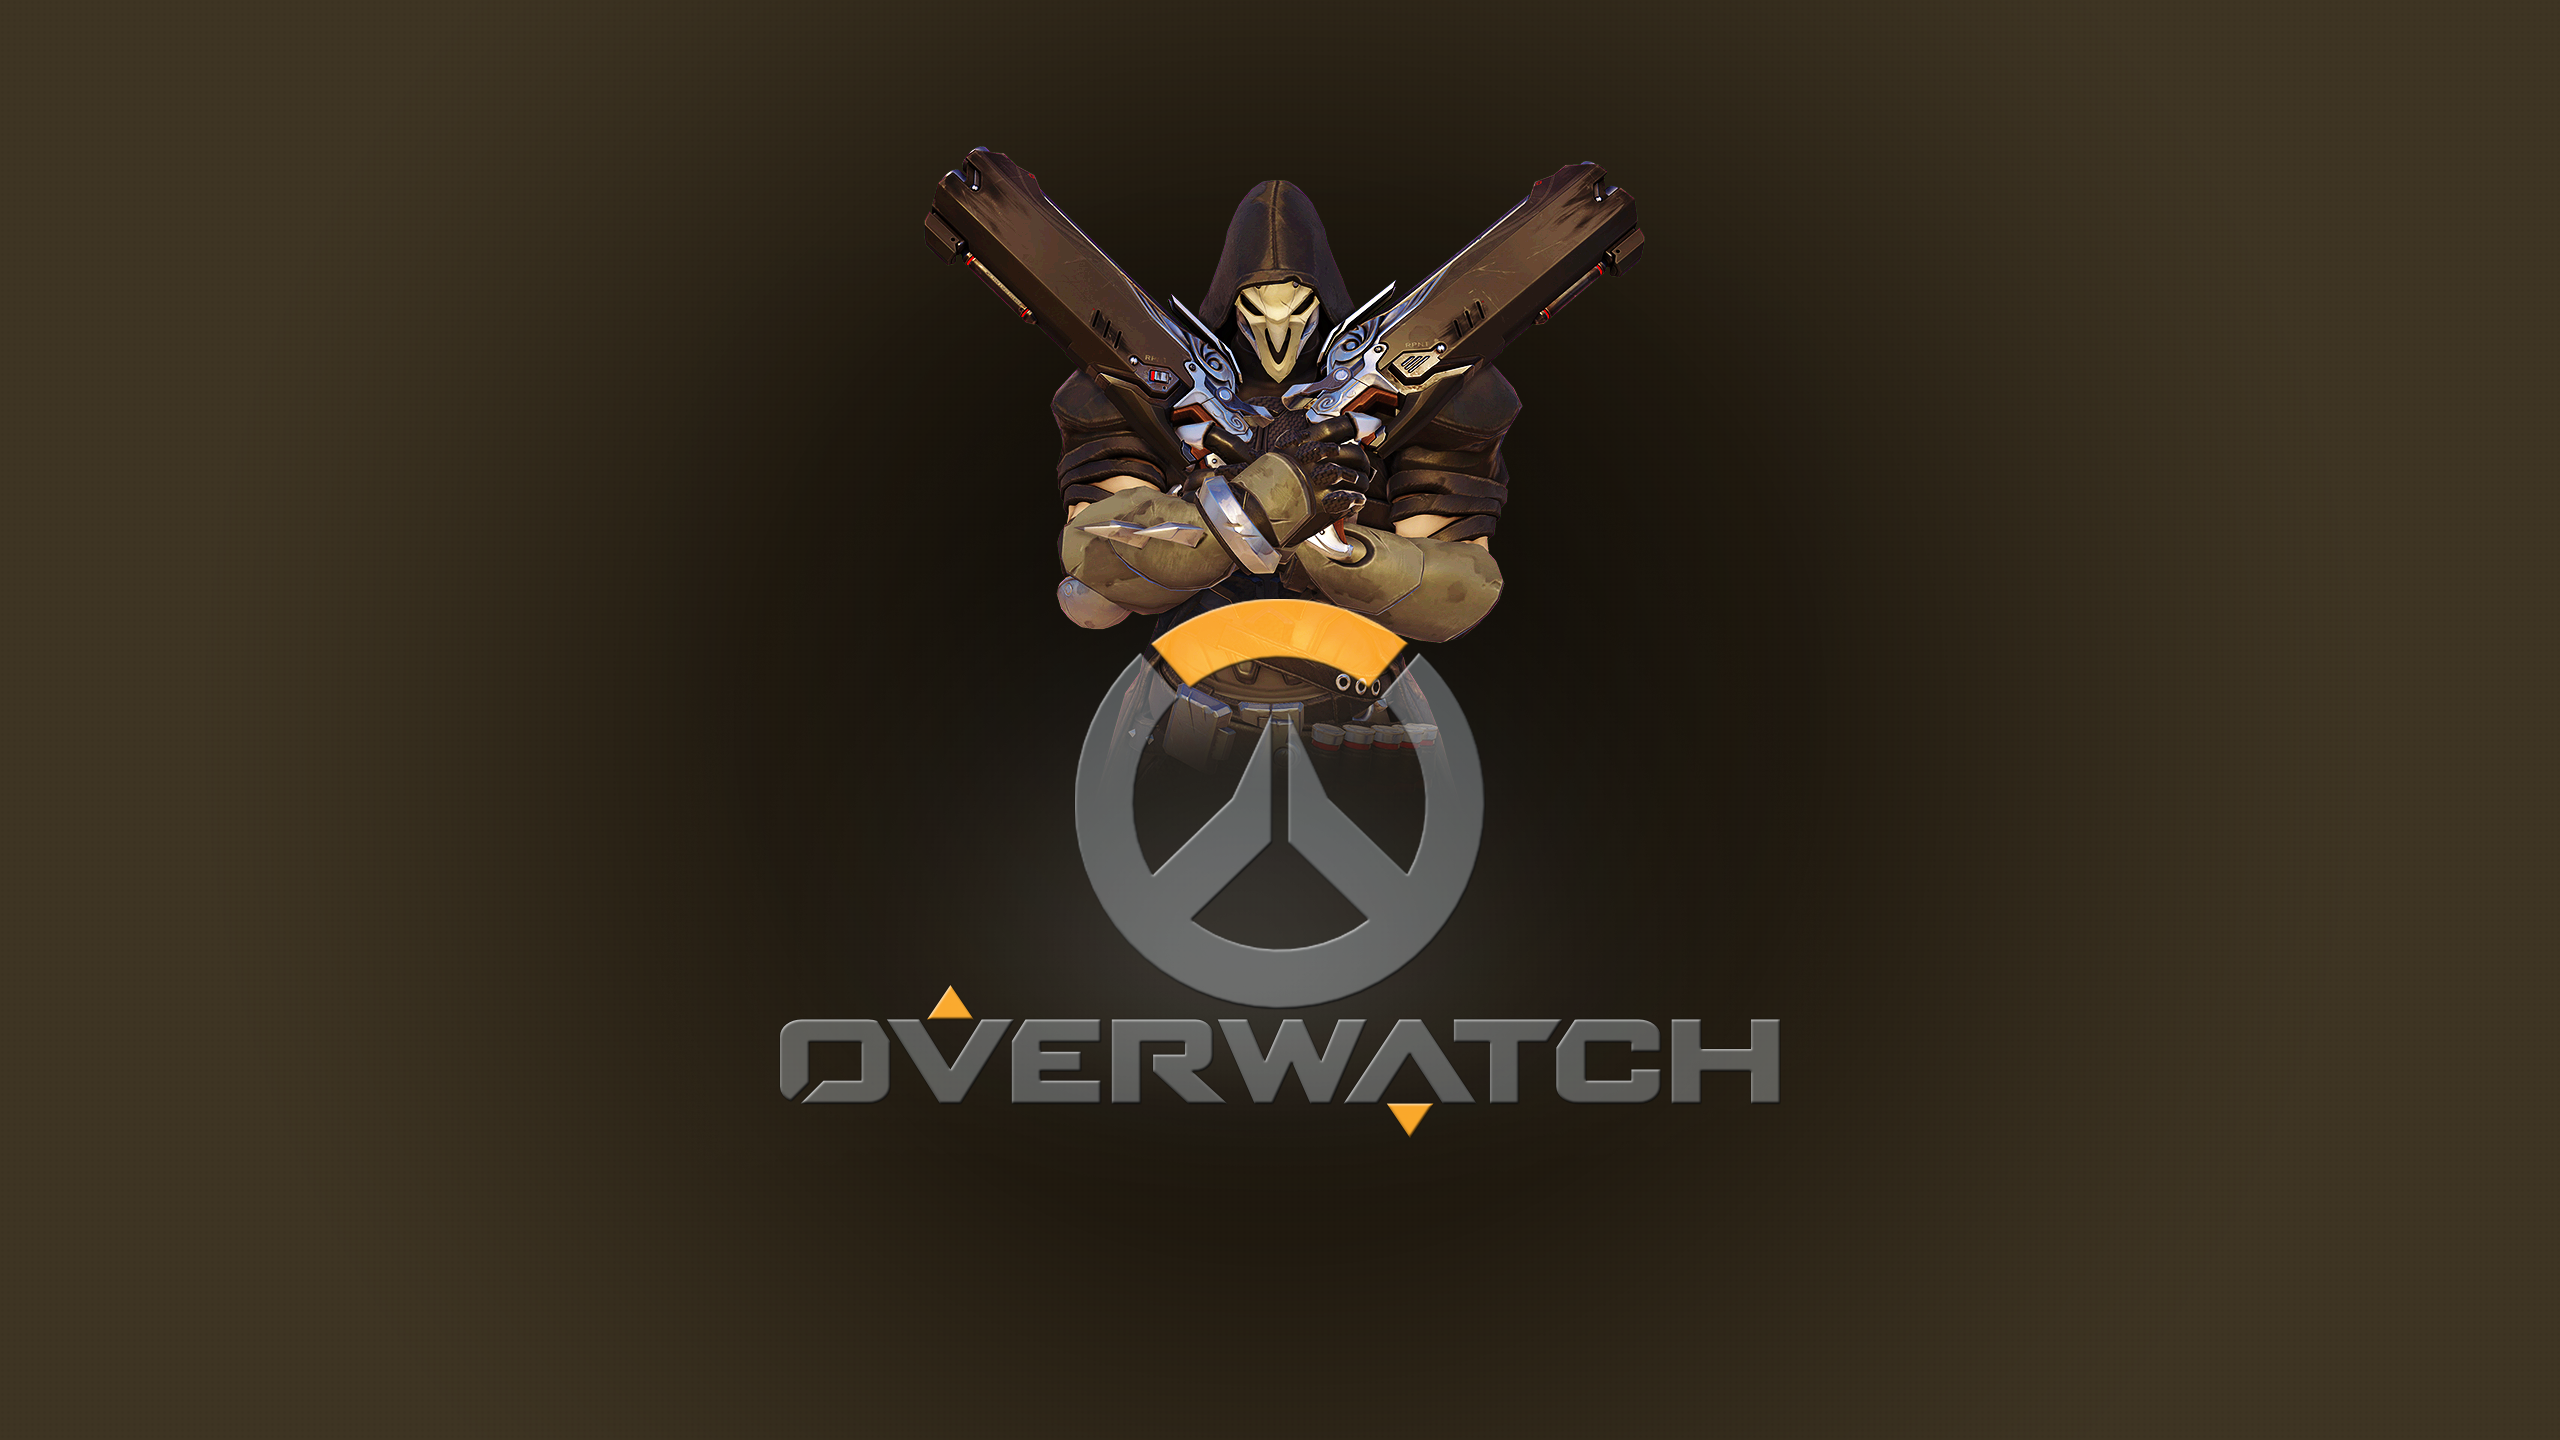 Overwatch wallpapers pictures images for Photo fond ecran hd